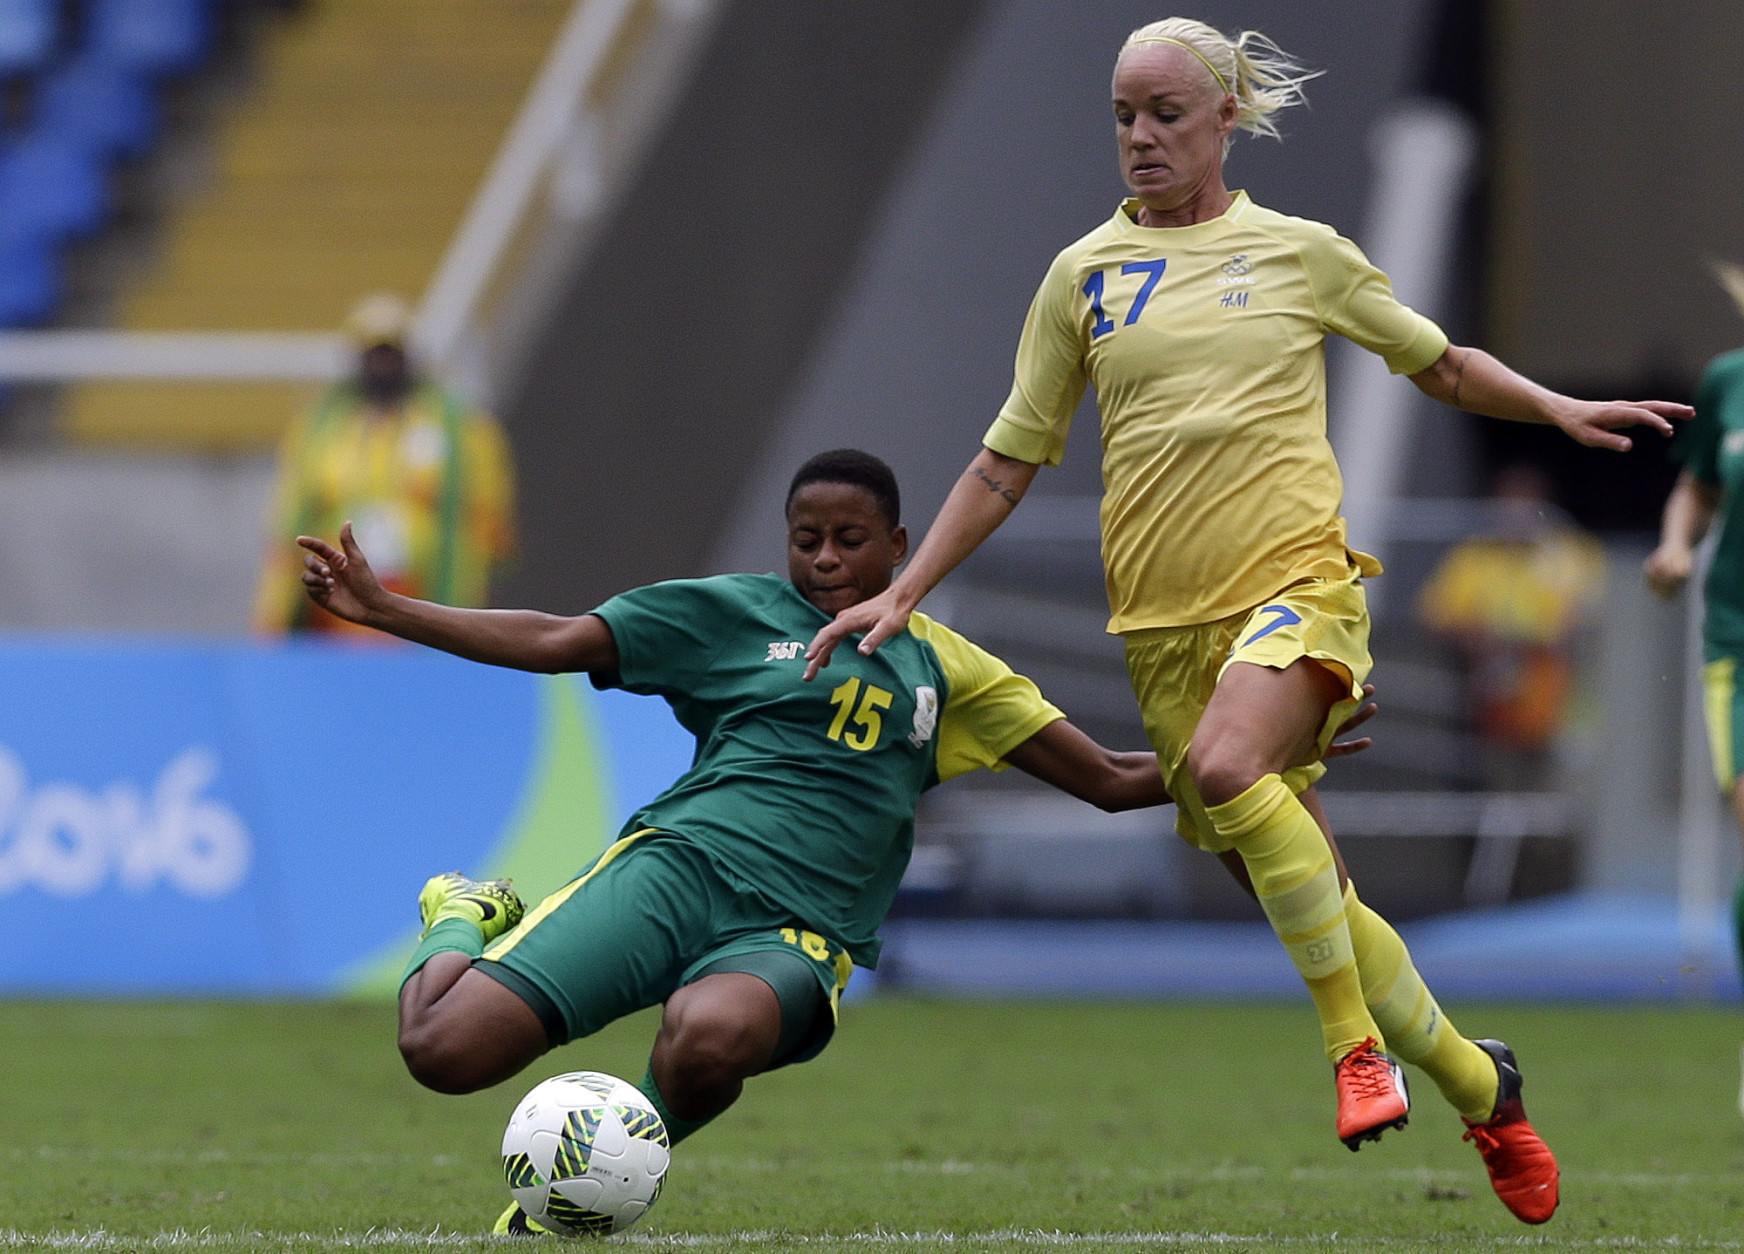 Sweden's Caroline Seger, right, and South Africa's Refiloe Jane fight for the ball during the opening match of the Women's Olympic Football Tournament between Sweden and South Africa at the Rio Olympic Stadium in Rio de Janeiro, Brazil, Wednesday, Aug. 3, 2016. (AP Photo/Leo Correa)